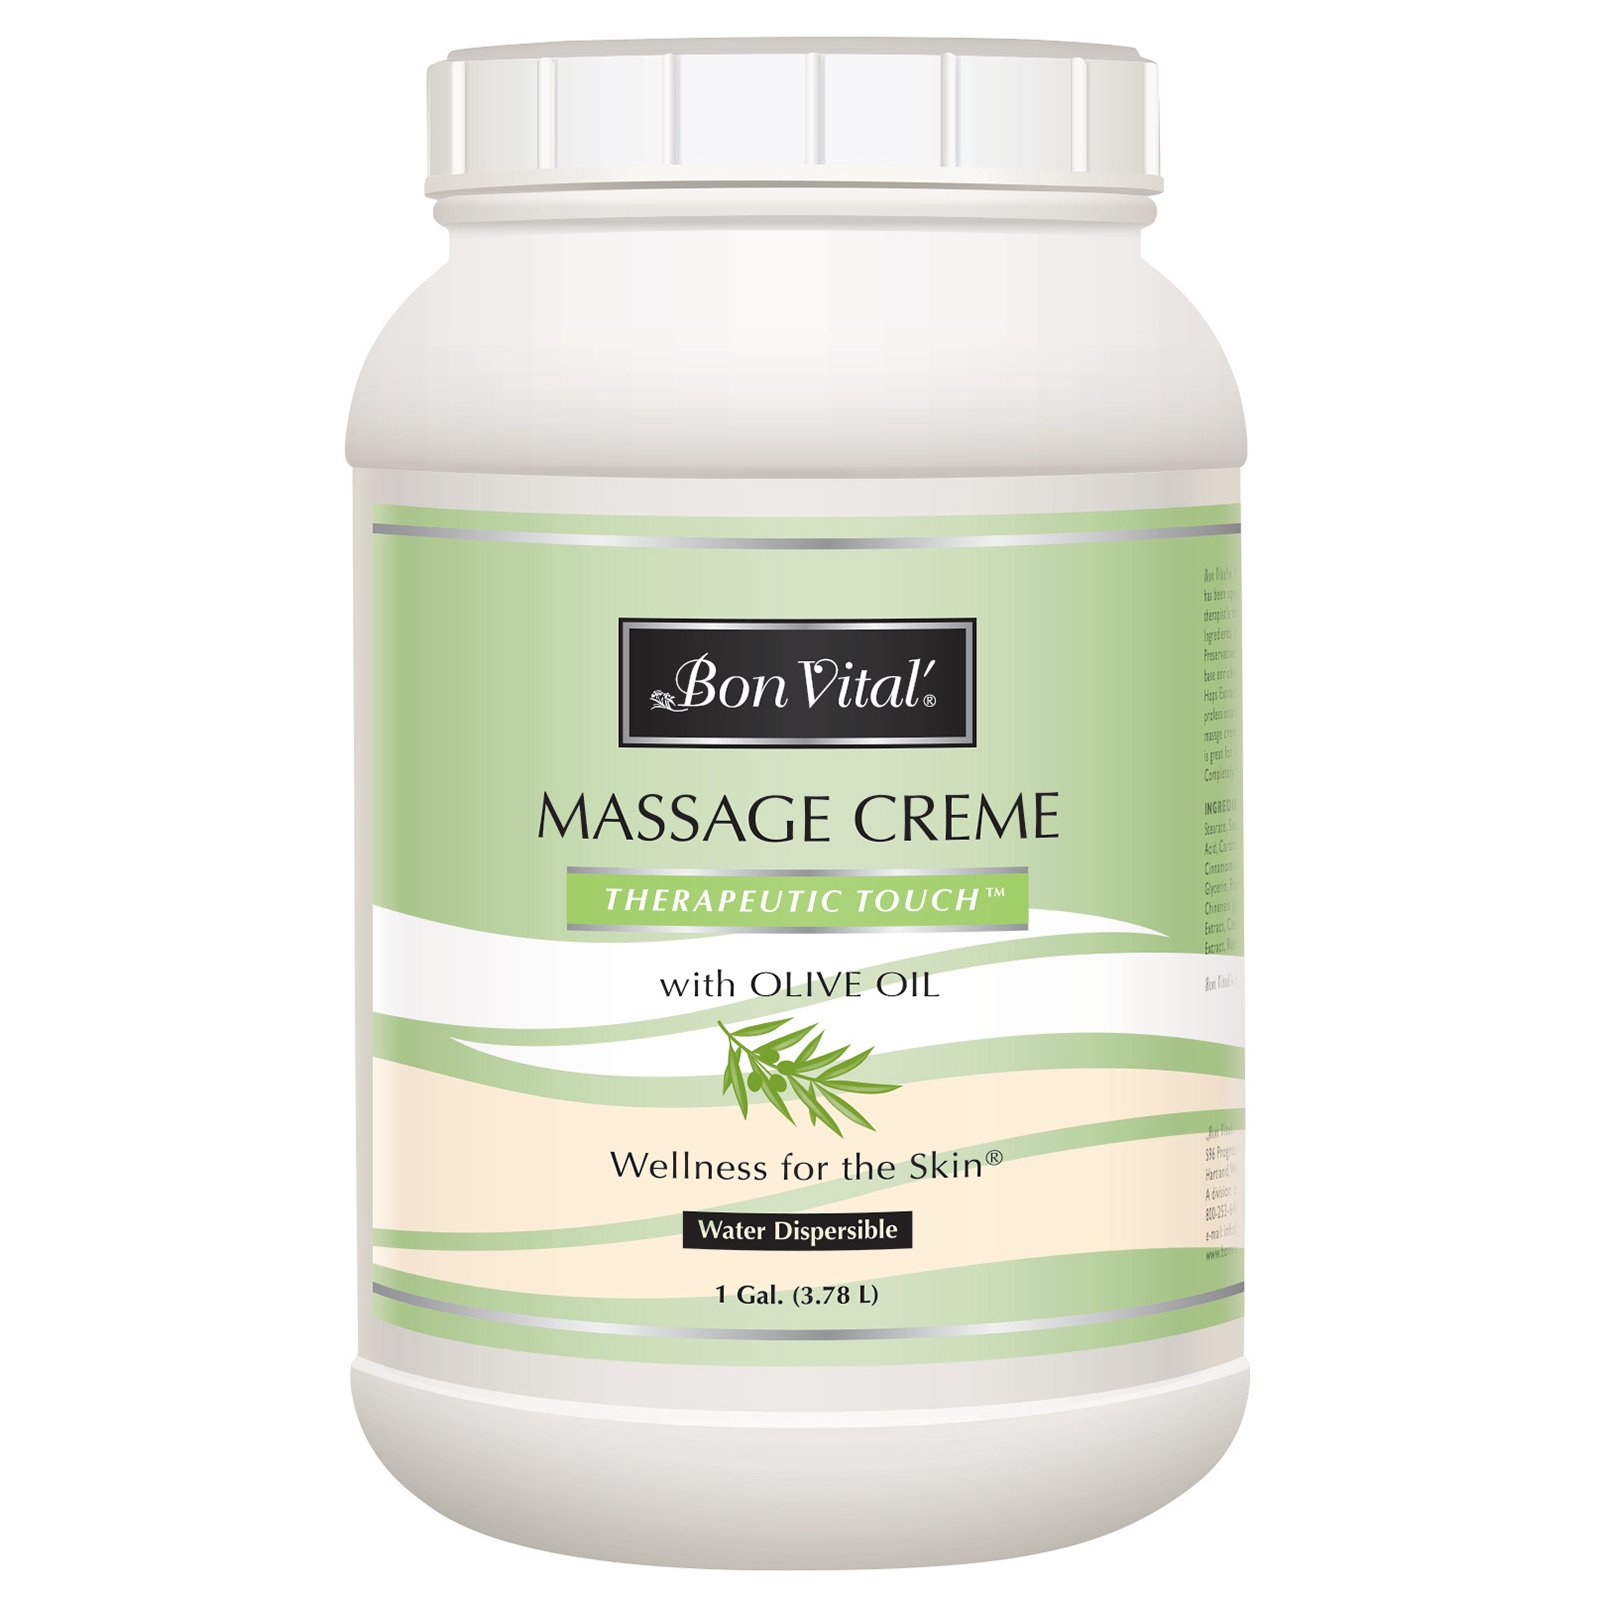 Bon Vital' Therapeutic Touch Massage Crème, Professional Massage Therapy Cream with Olive Oil to Repair Dry Skin & Soothe Sore Muscles, Full Body Moisturizer for Youthful Looking Skin, 1 Gallon by Bon Vital (Image #1)